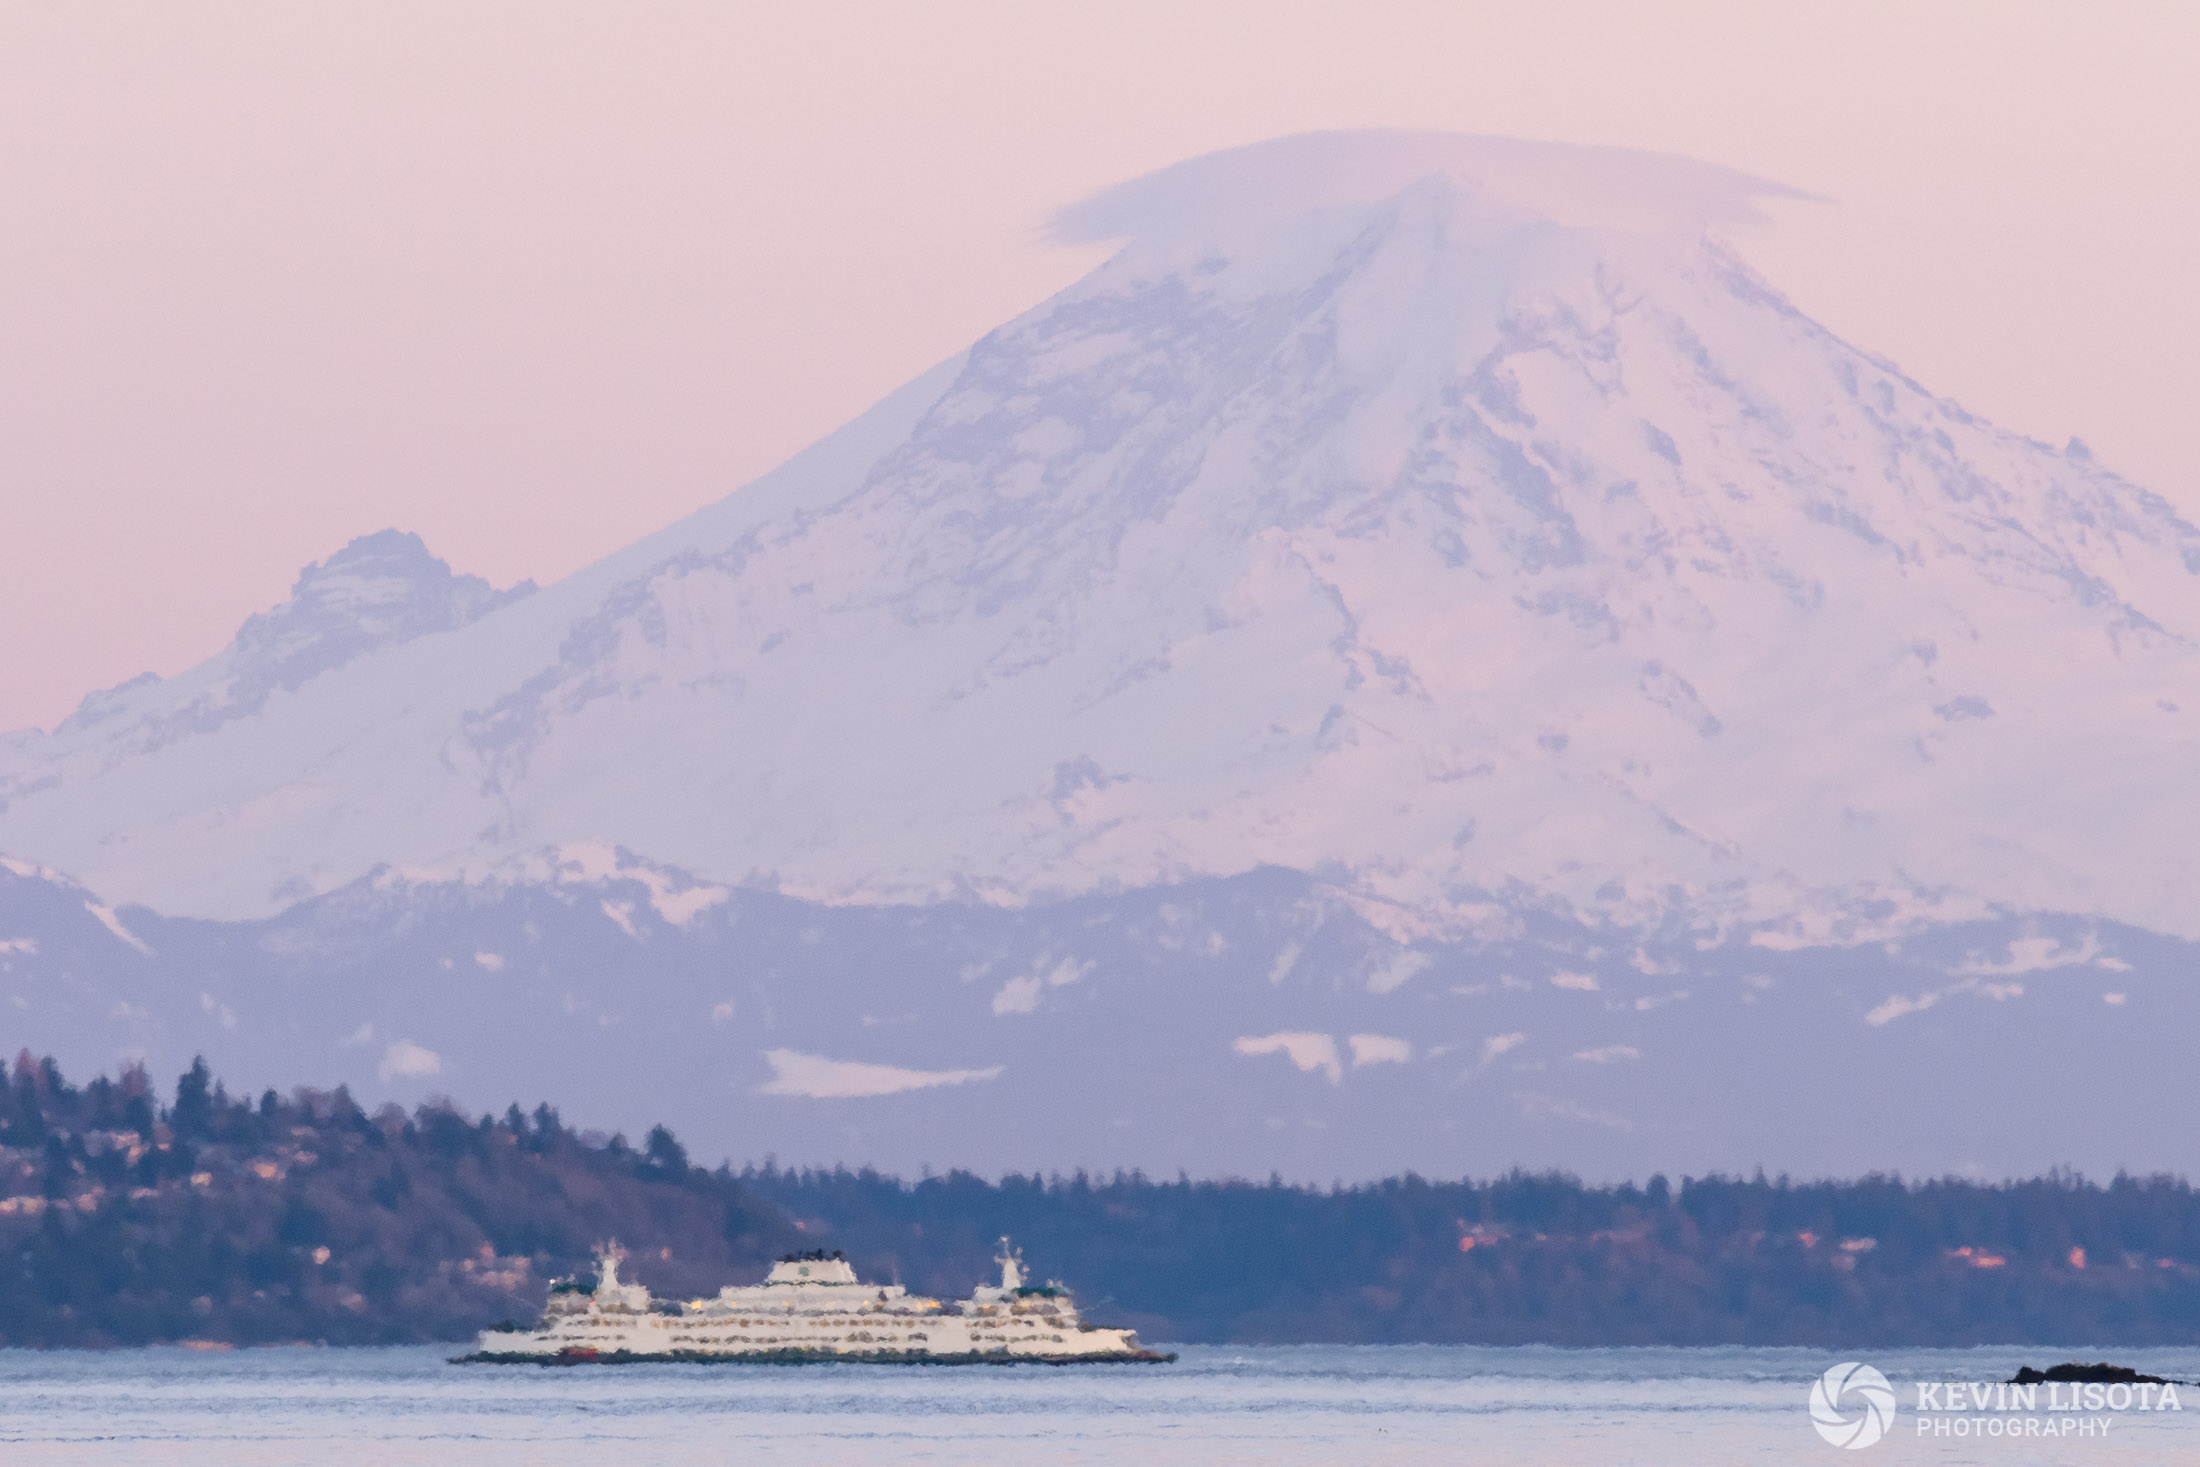 Mt. Rainier & ferry - heat distortion